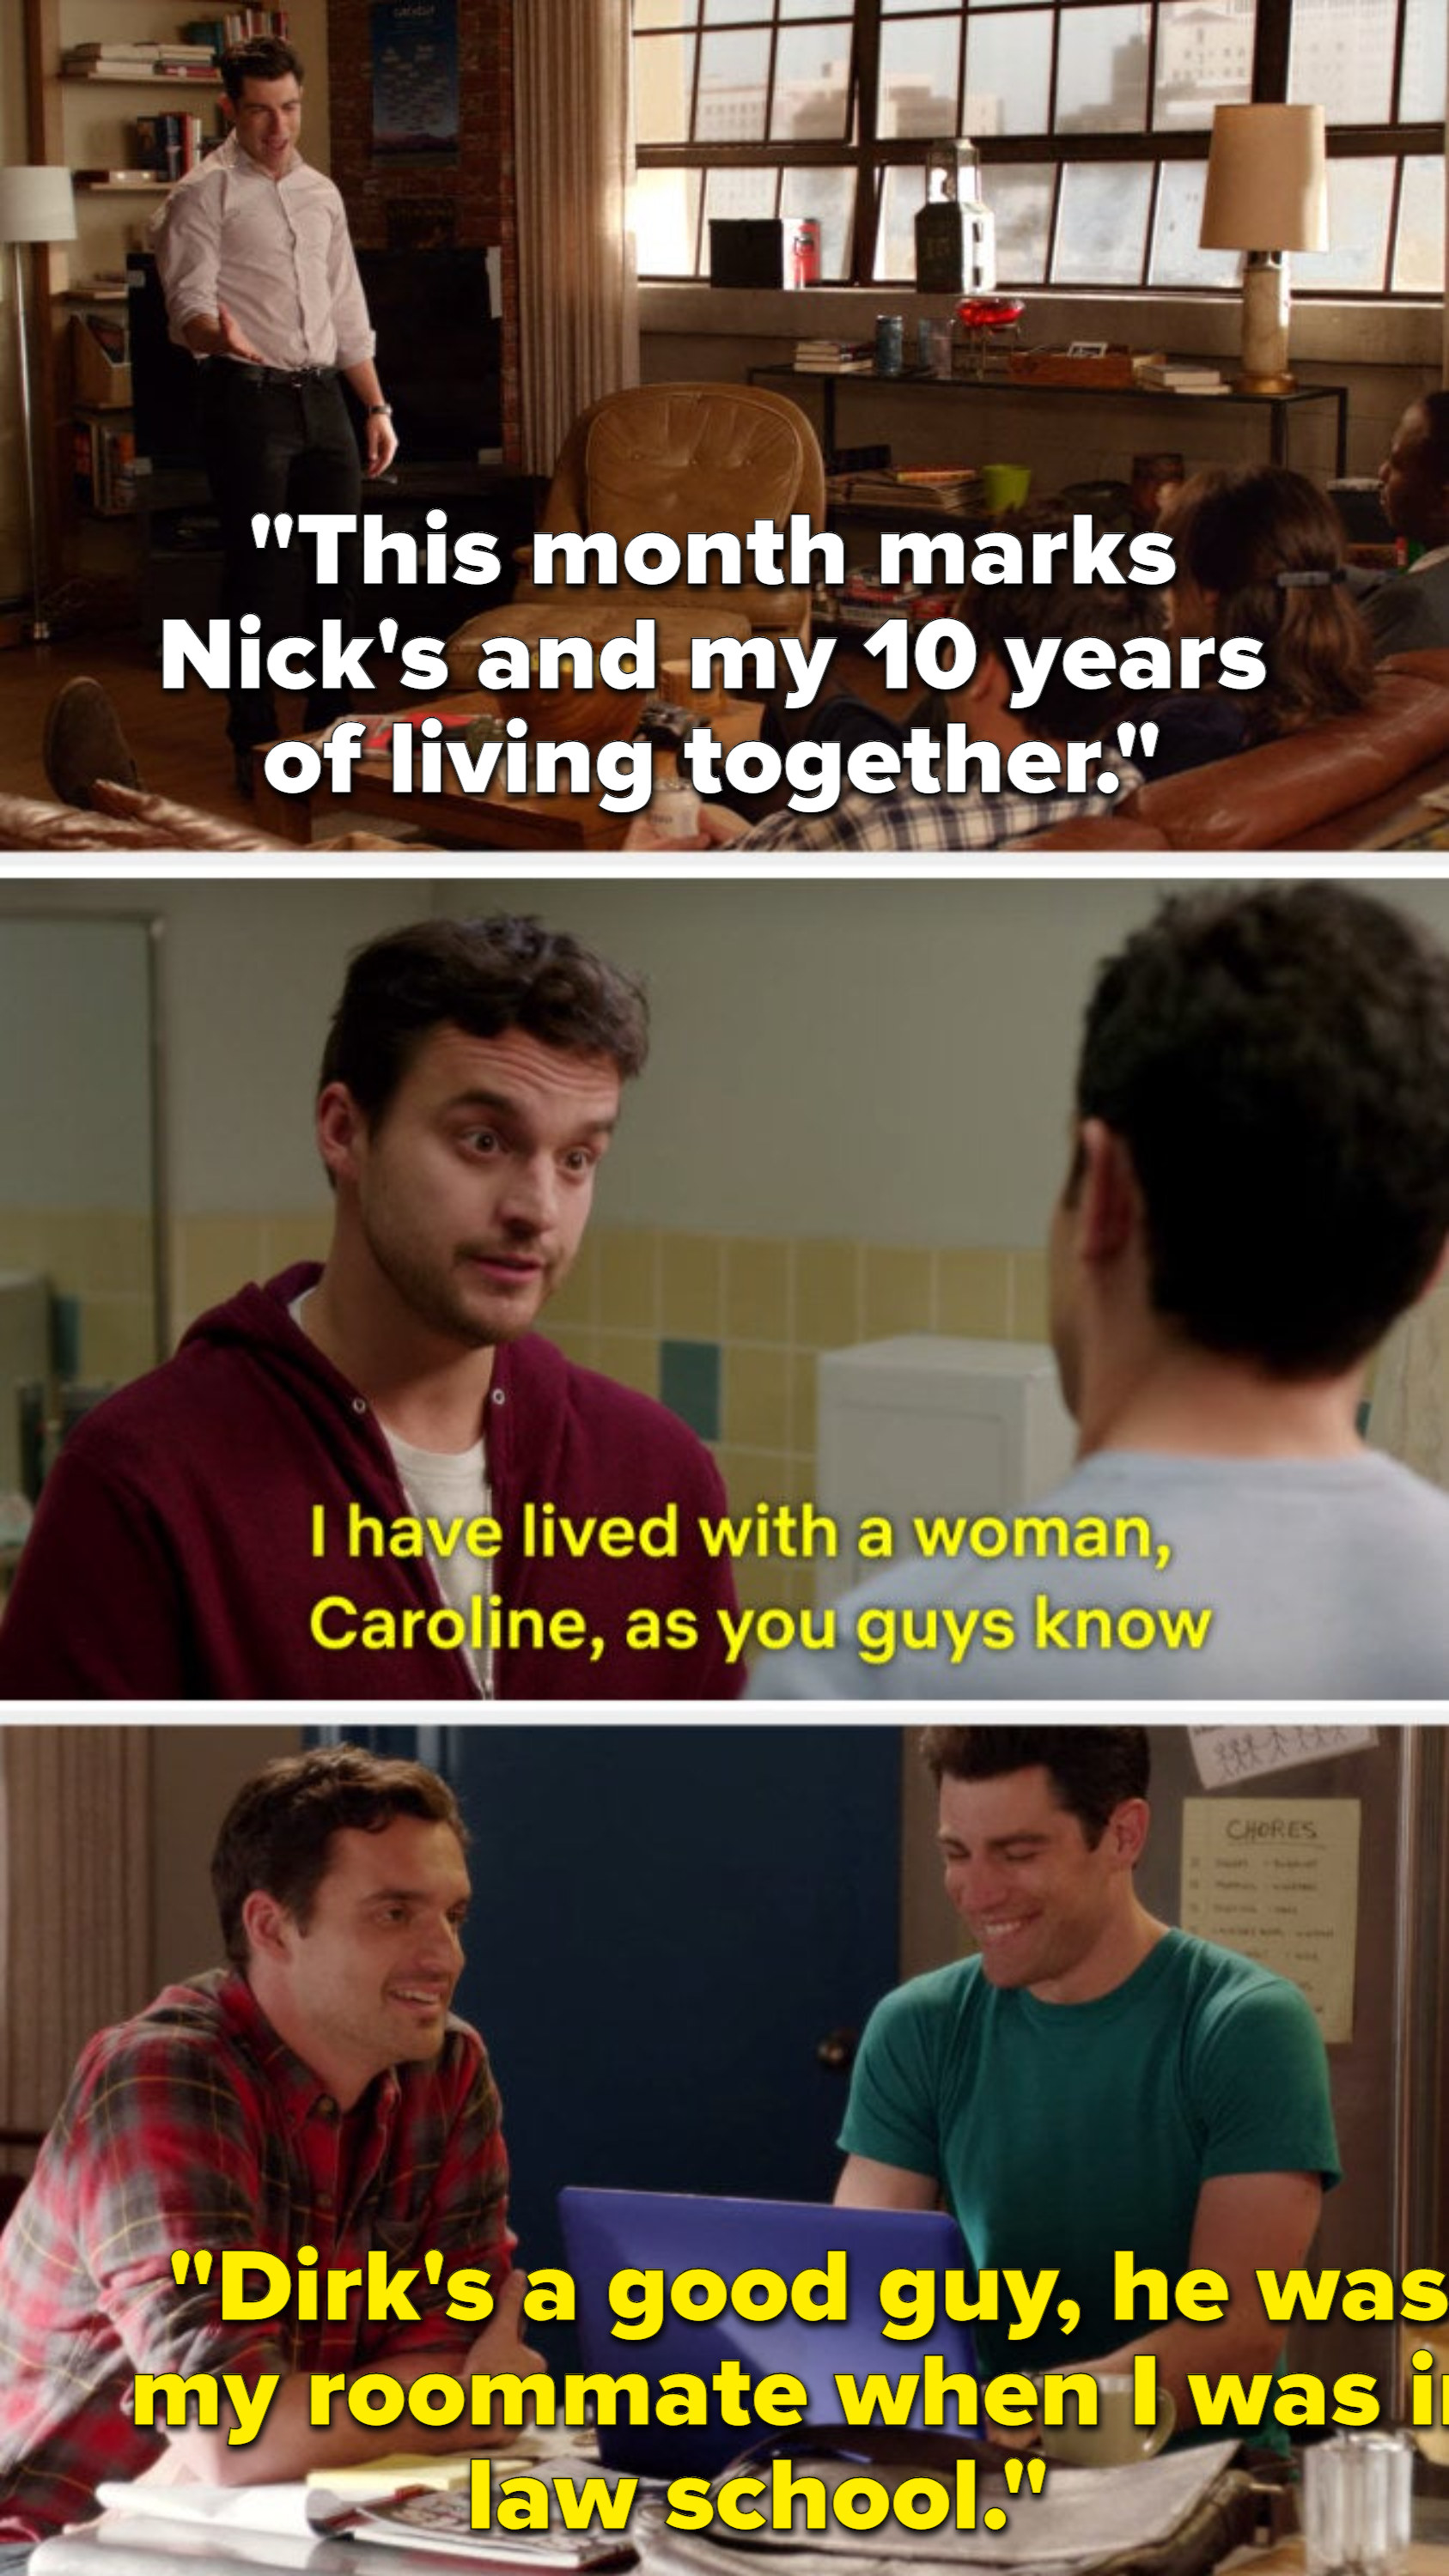 Schmidt saying that he and nick have lived together for 10 years, and nick explaining in two separate episodes that he's lived with caroline and dirk